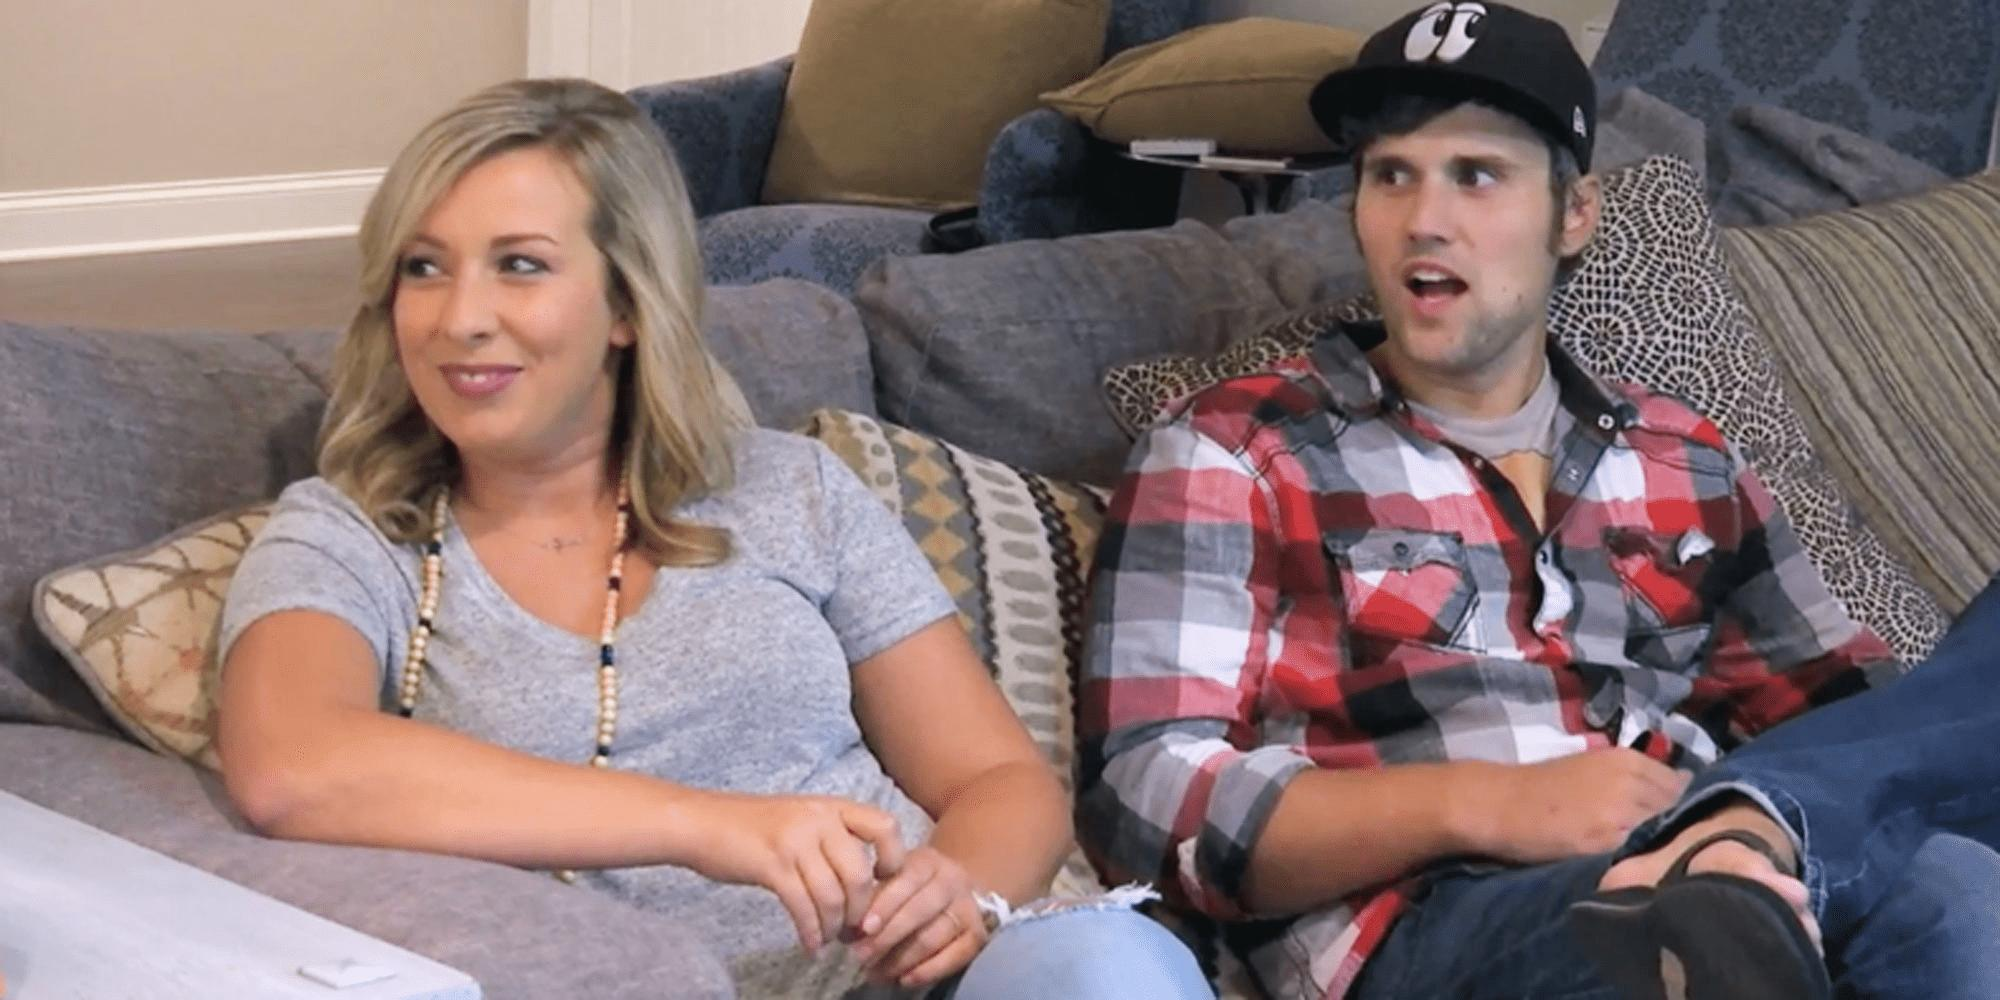 Mackenzie Standifer 'Confused And Upset' After Ryan Edwards Accuses Her Of Cheating On Him